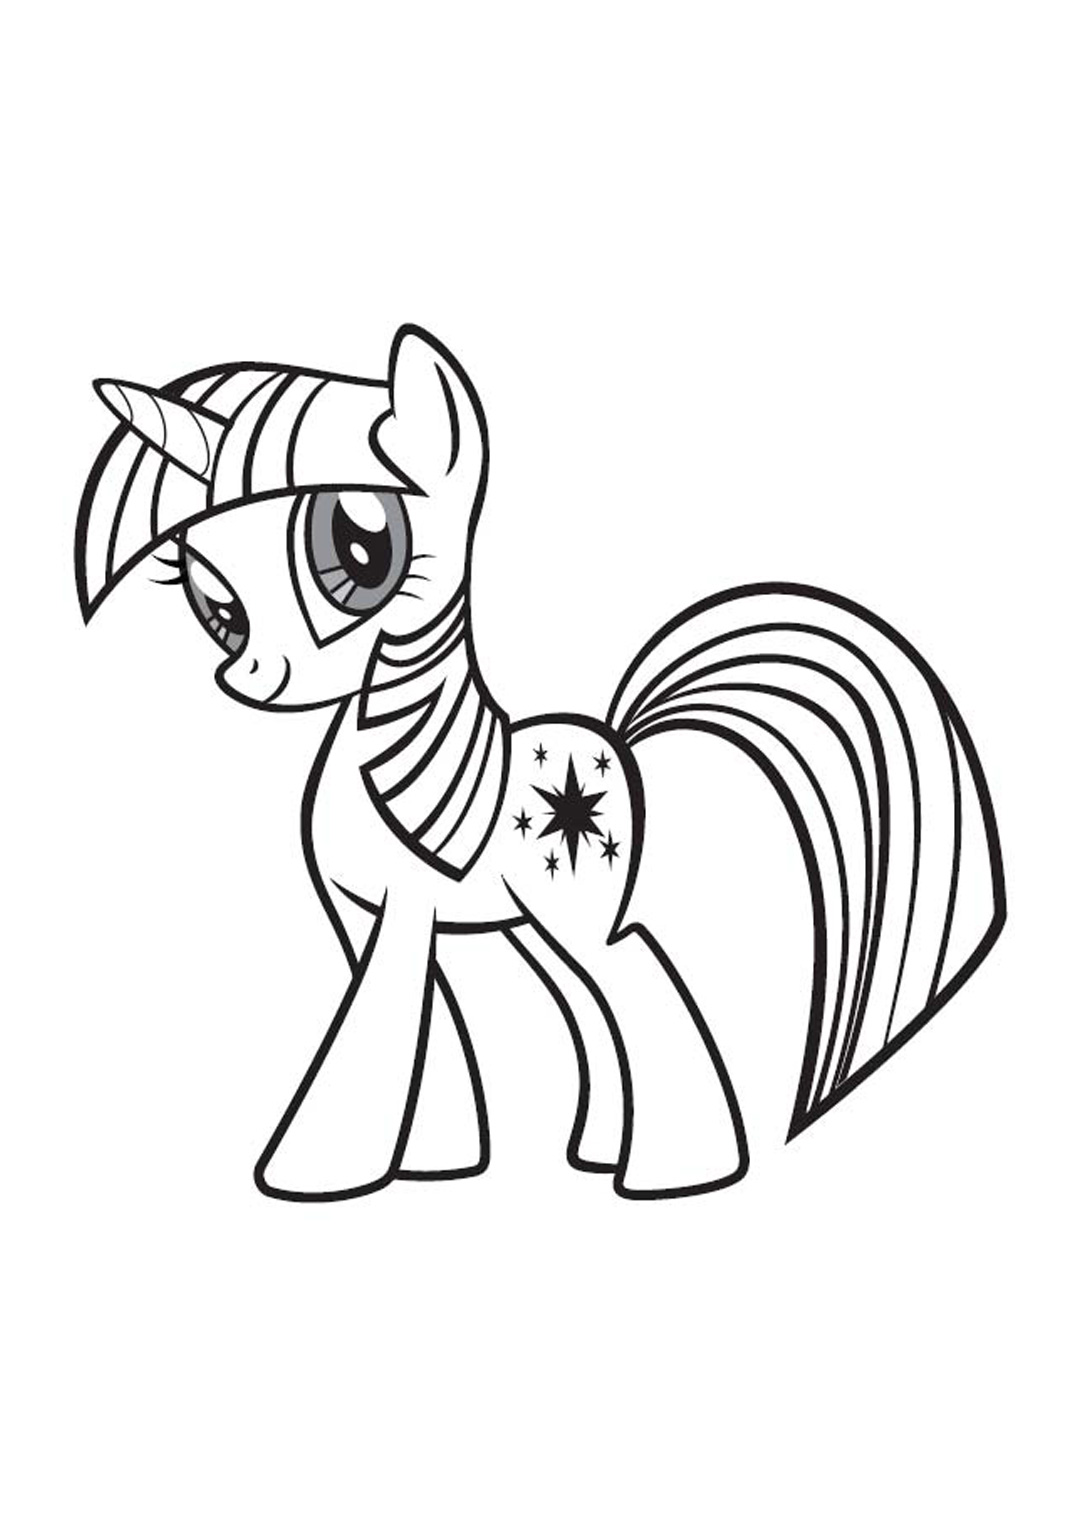 My Little Pony Anime Coloring Pages : Anime pony colouring pages